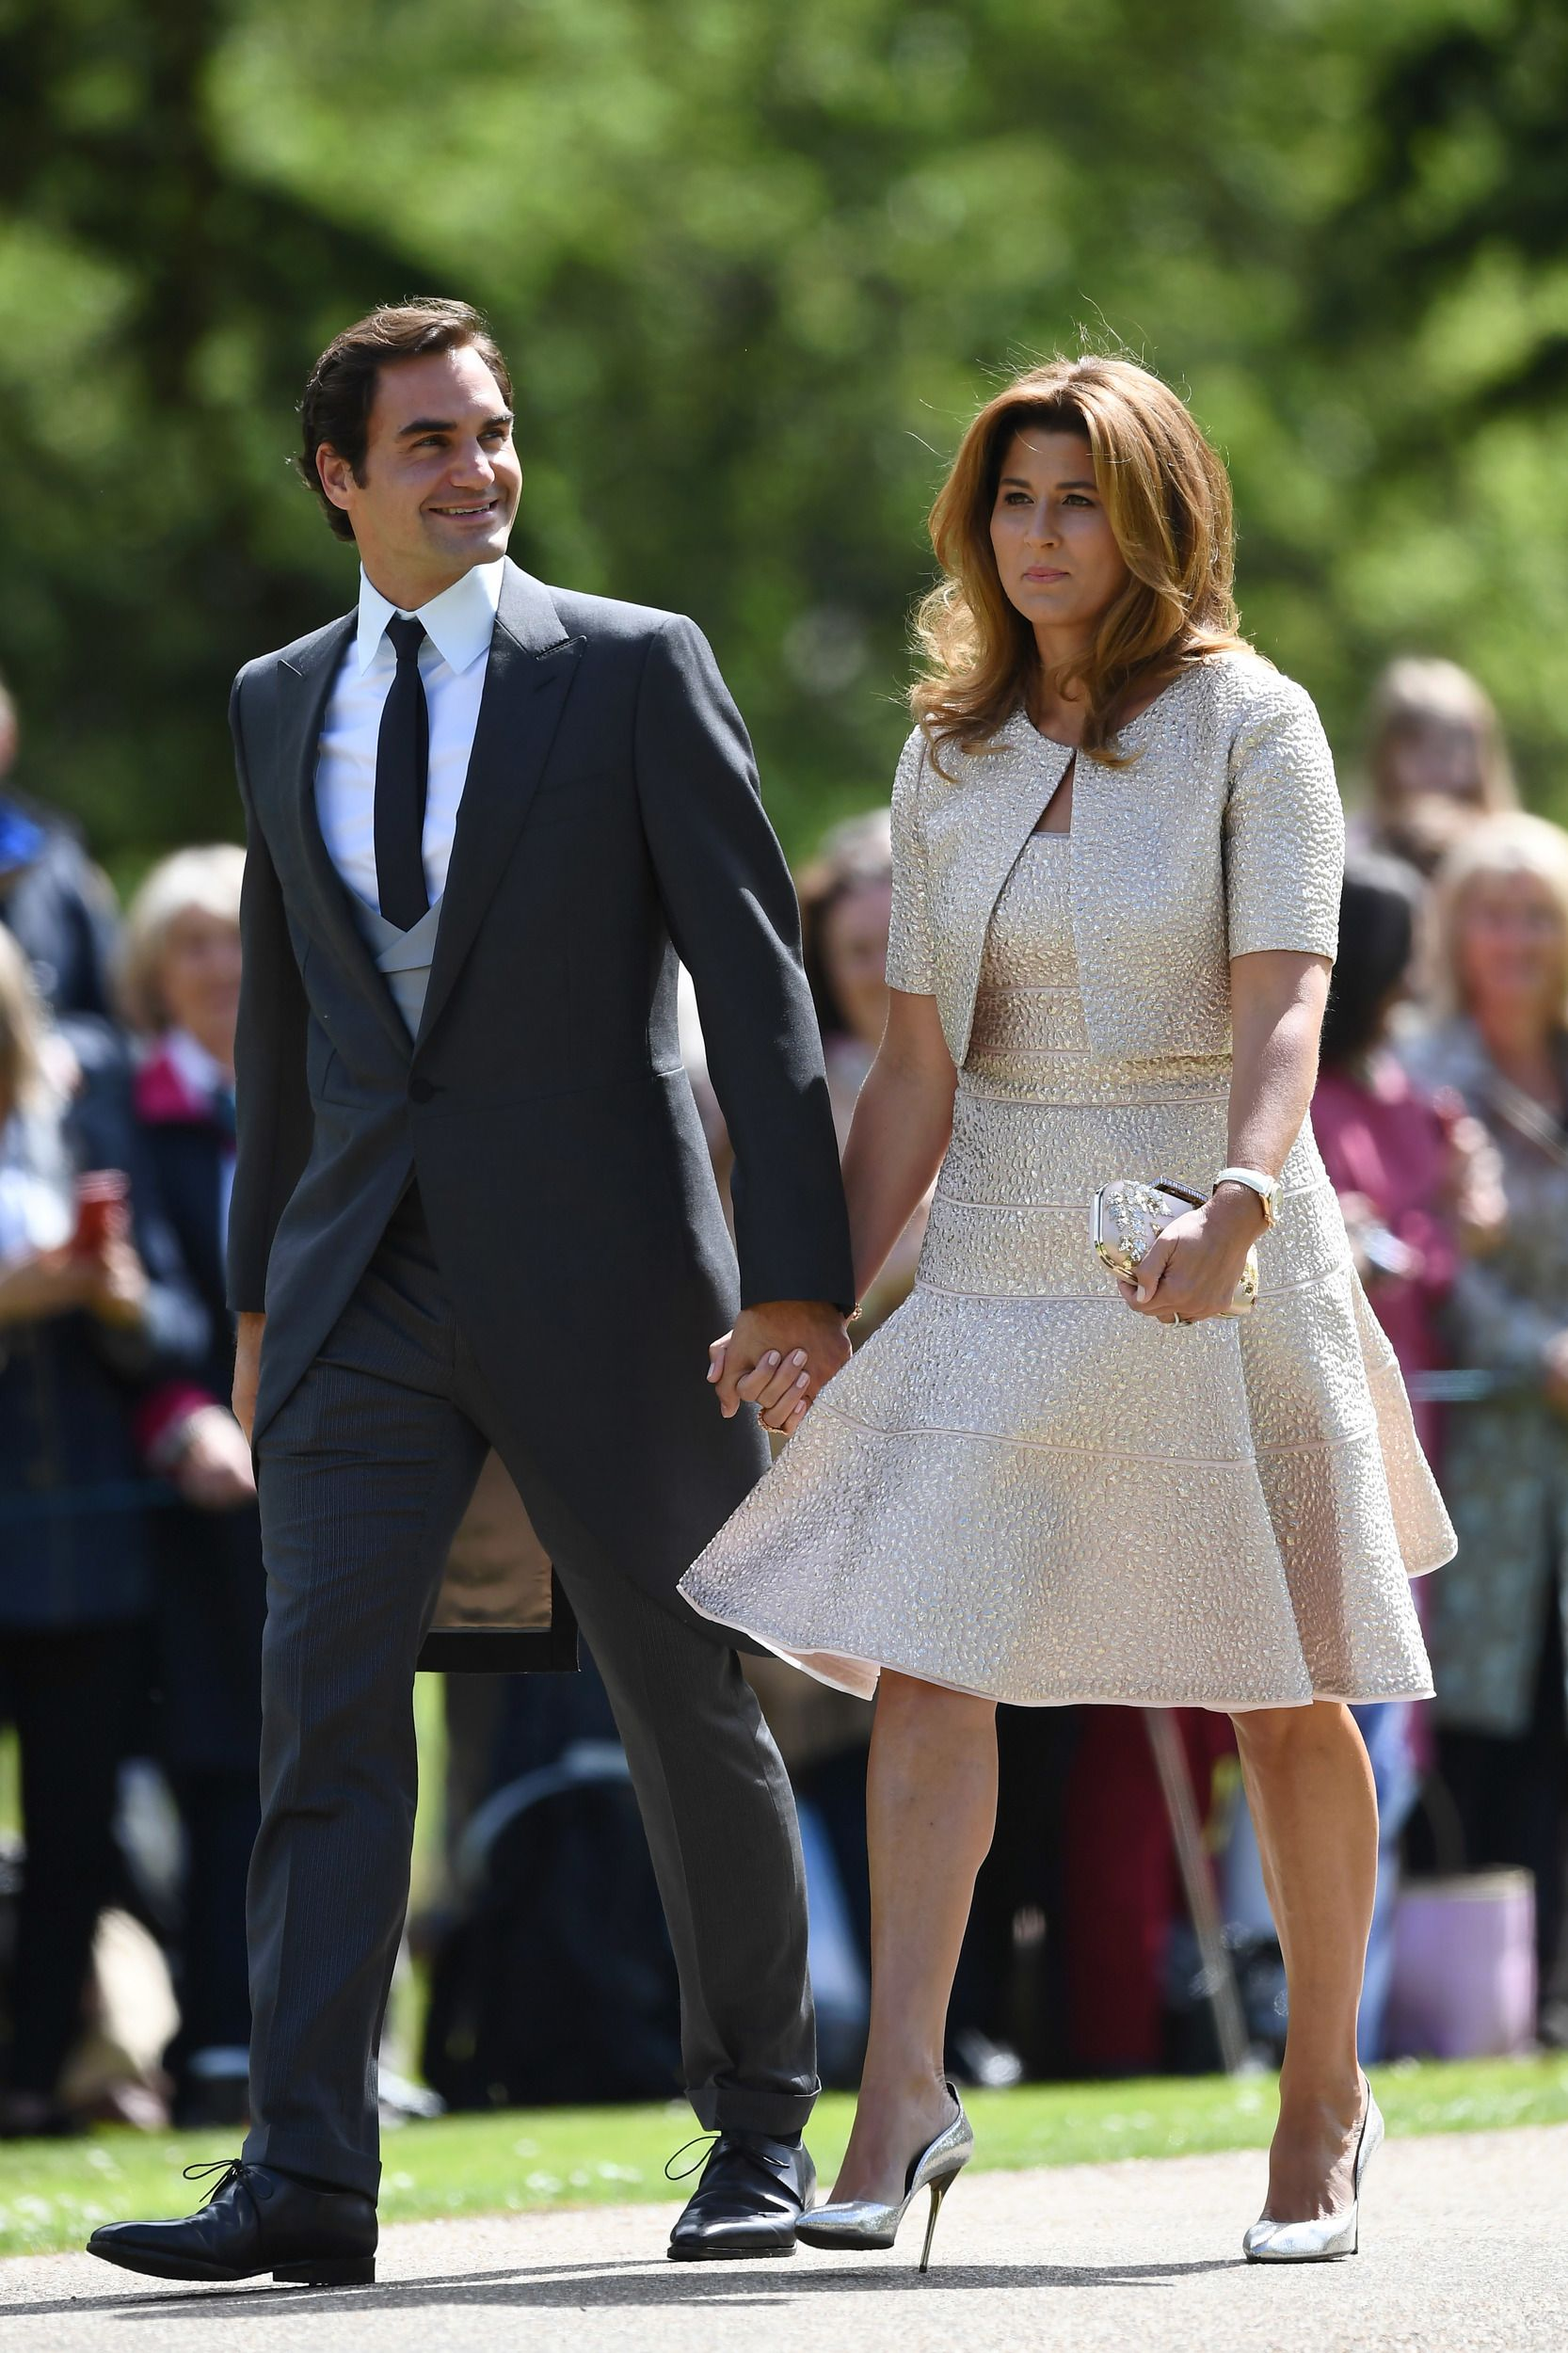 Pippa Middleton Marries James Matthews In Breathtaking Ceremony See All The Pics Pippa Middleton Roger Federer Pippa Middleton Wedding